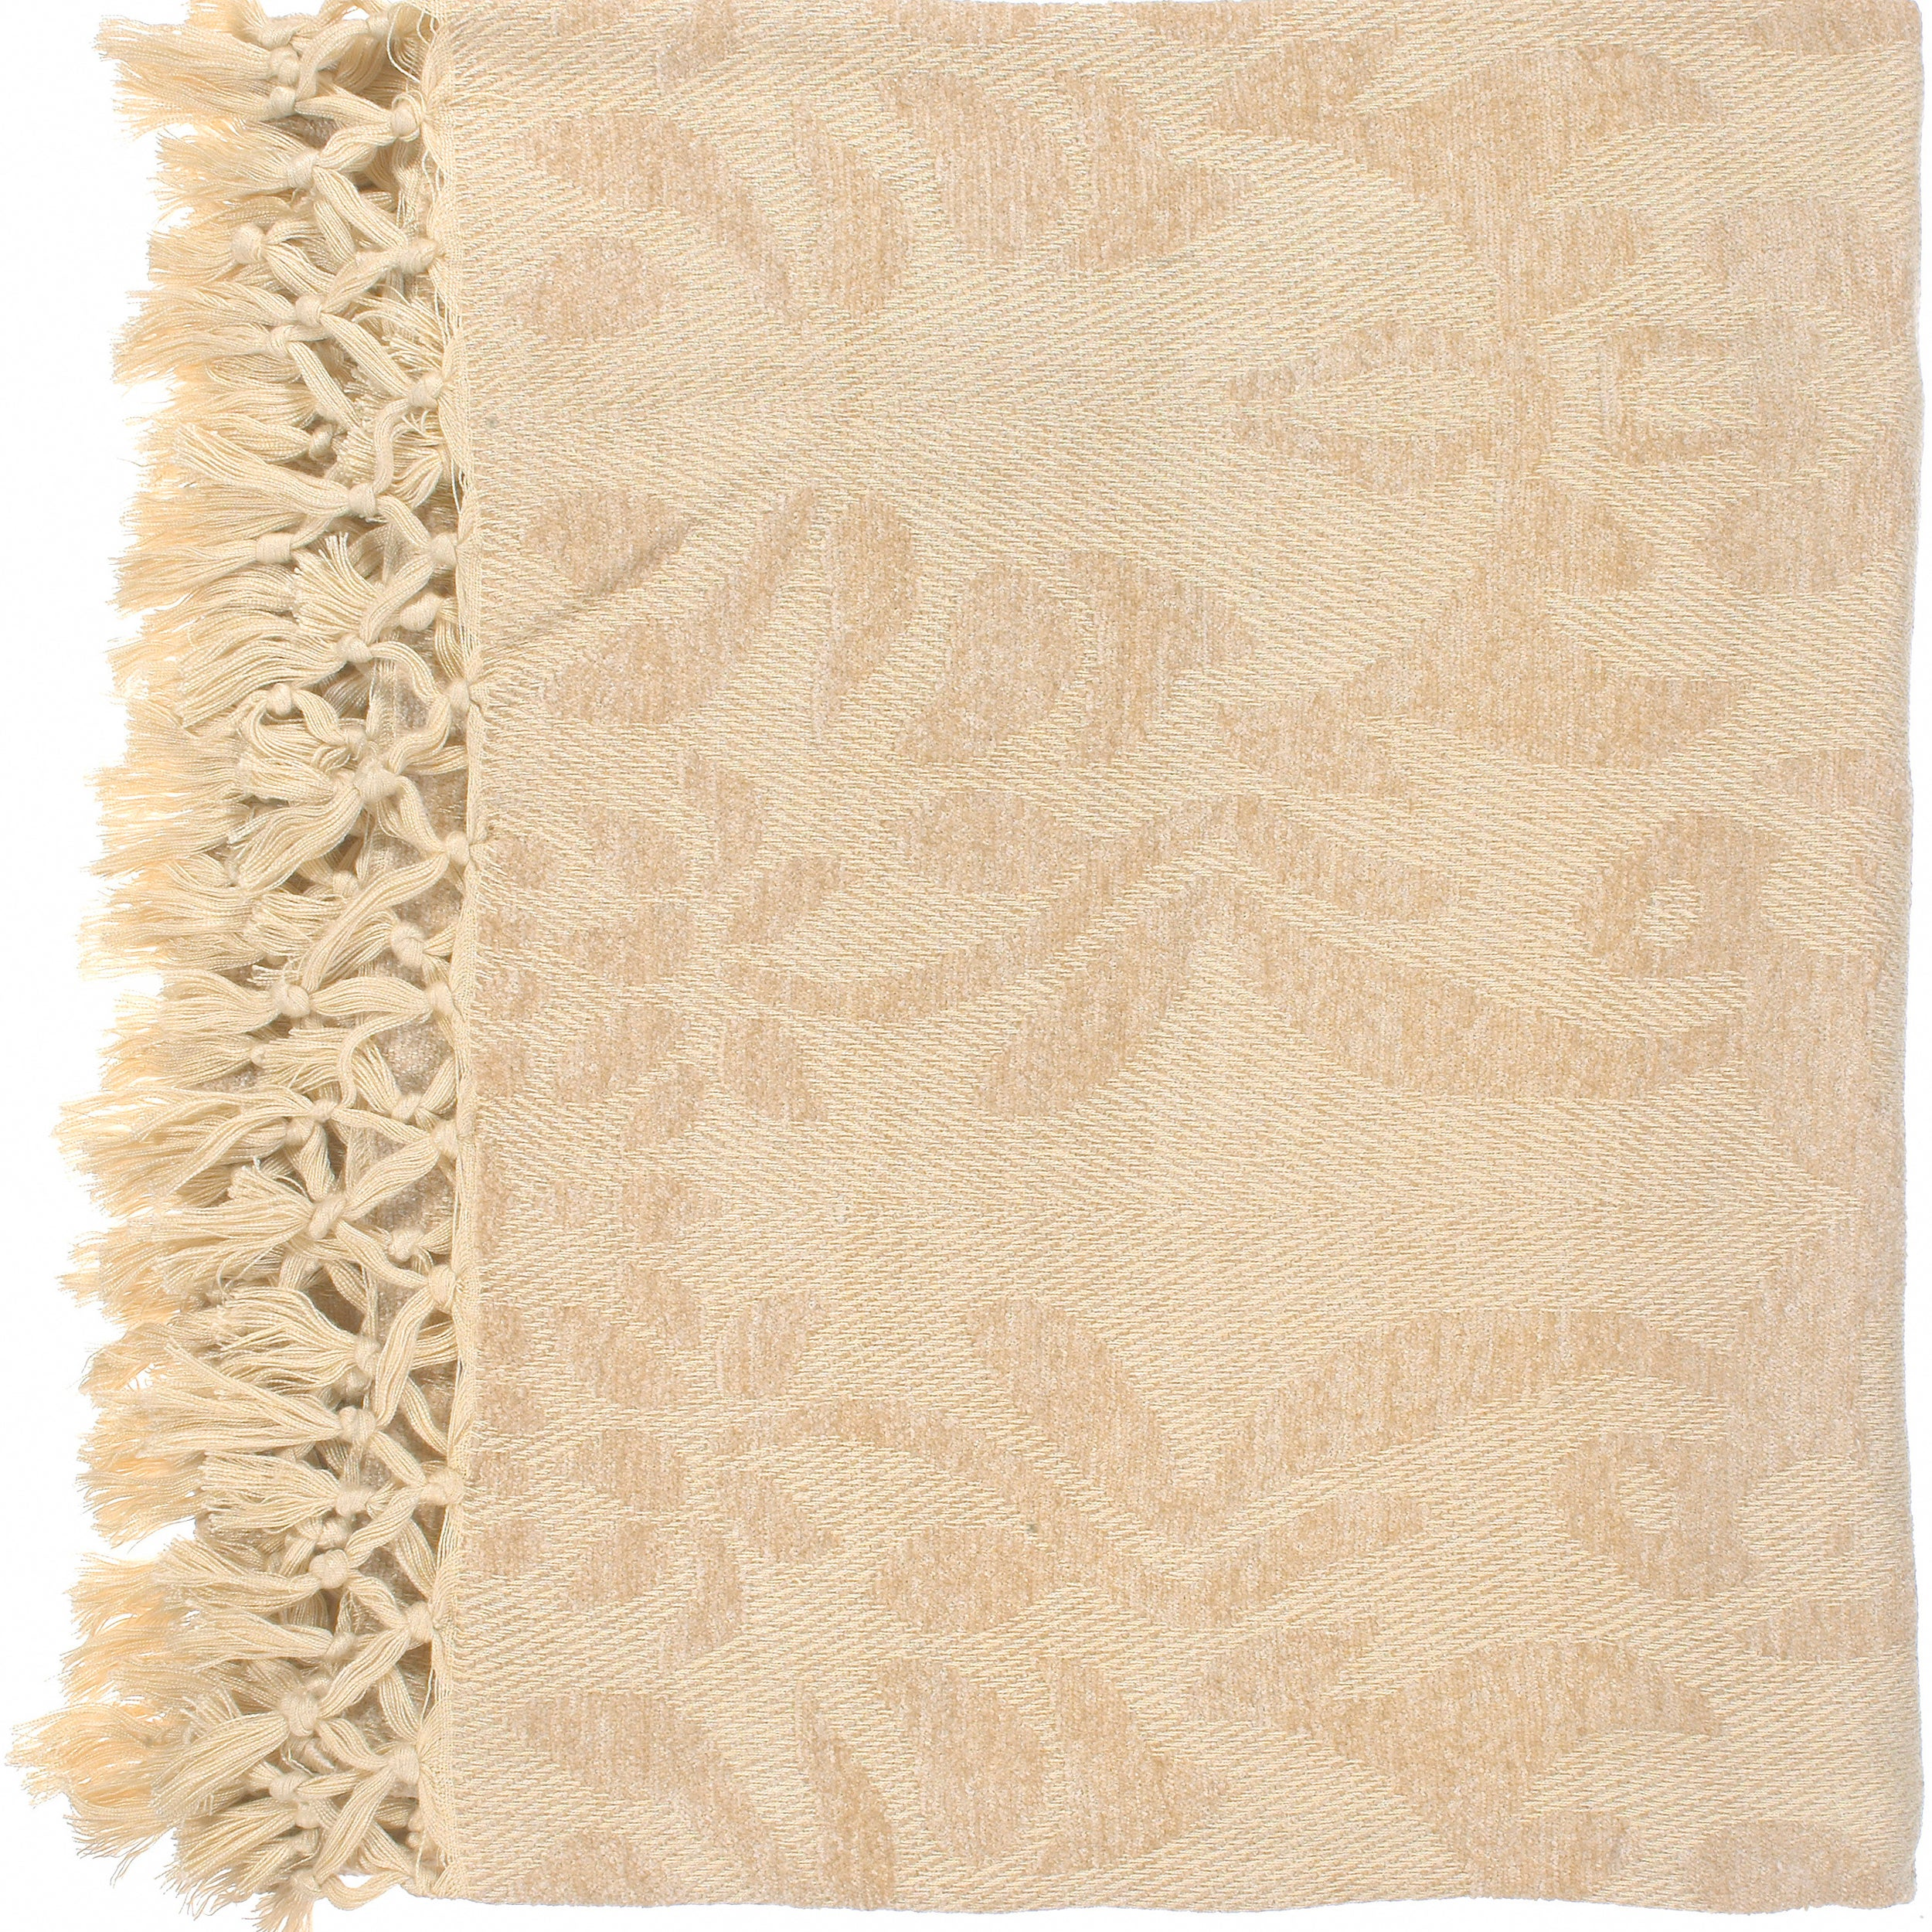 Woven Urbana Viscose Throw Blanket (50 x 70)